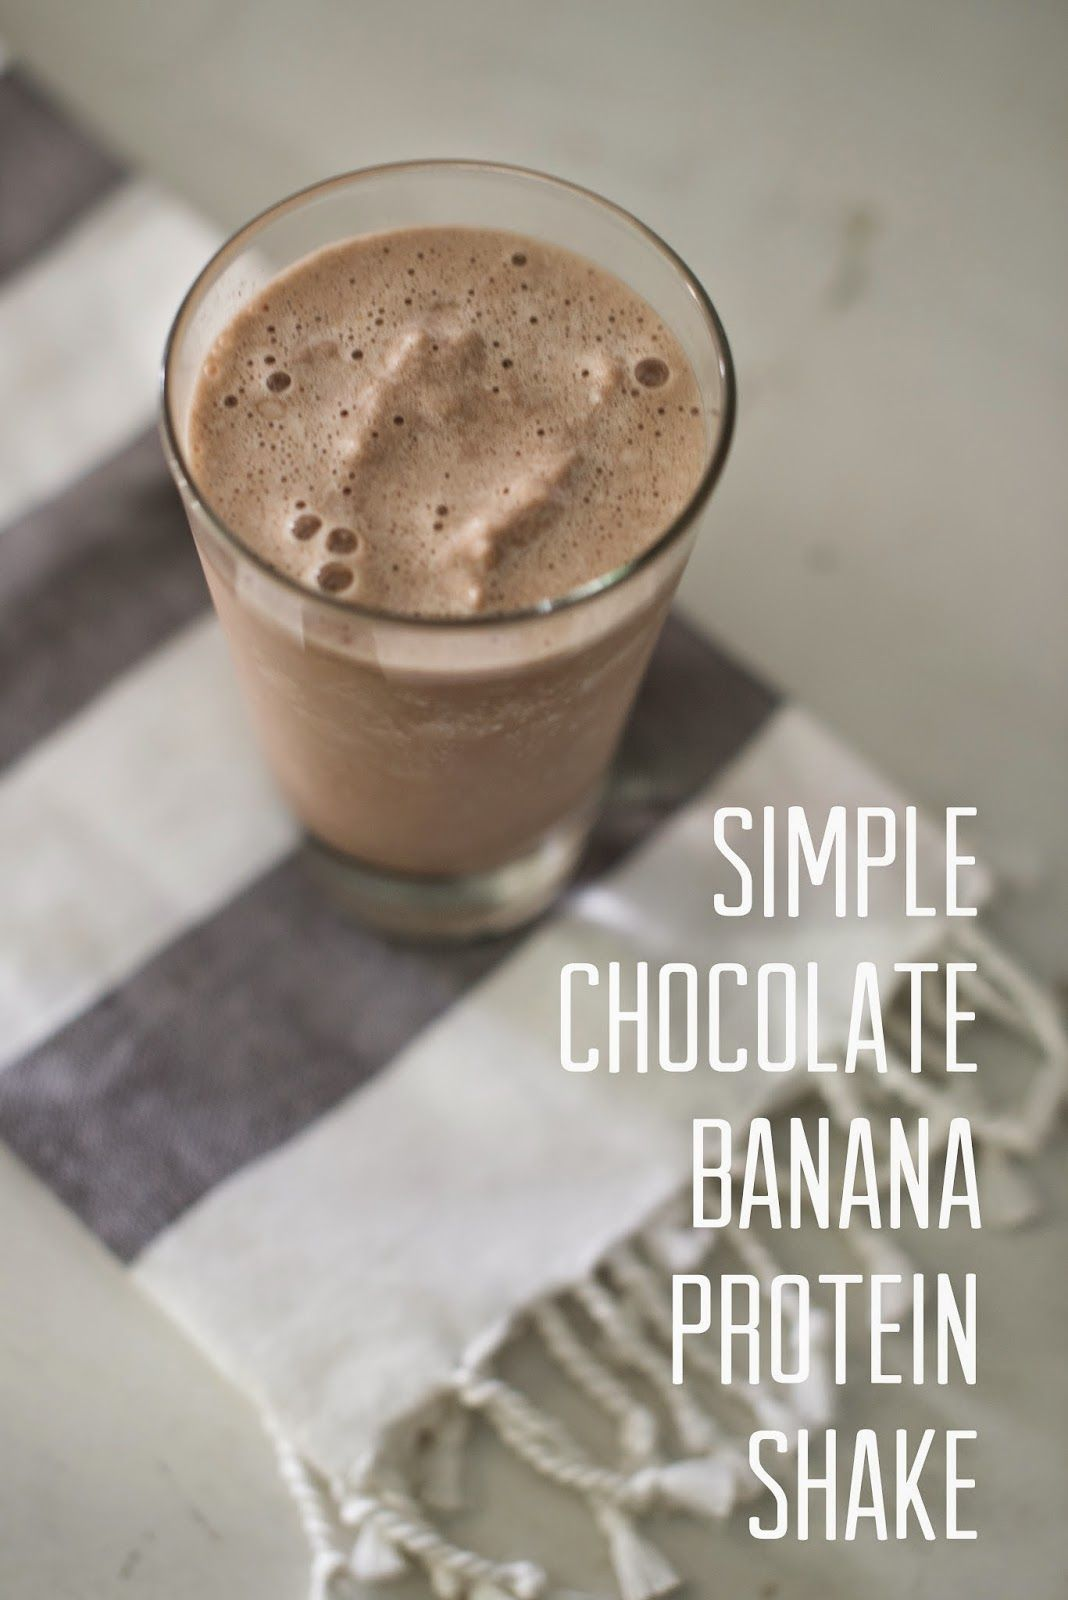 Simple Chocolate Banana Protein Shake #proteinshakes